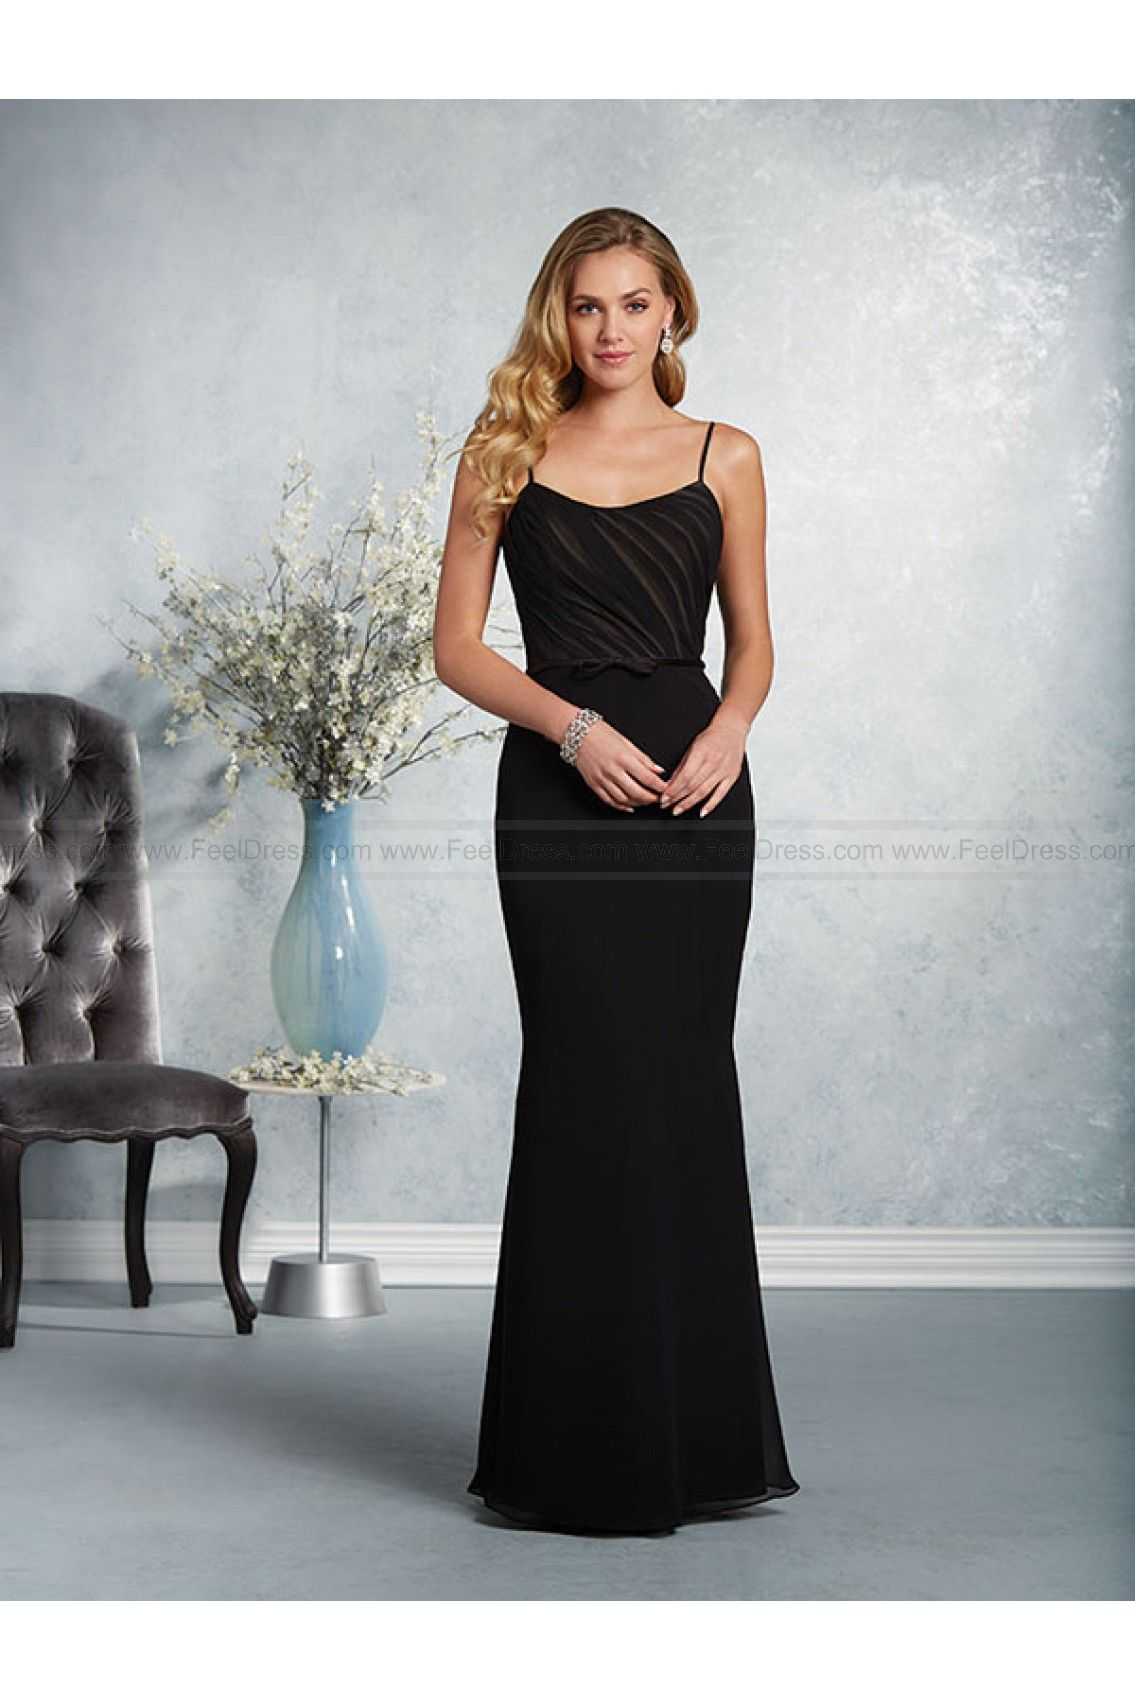 Alfred angelo bridesmaid dress style 7416 new alfred angelo alfred angelo bridesmaid dress style 7416 new ombrellifo Choice Image